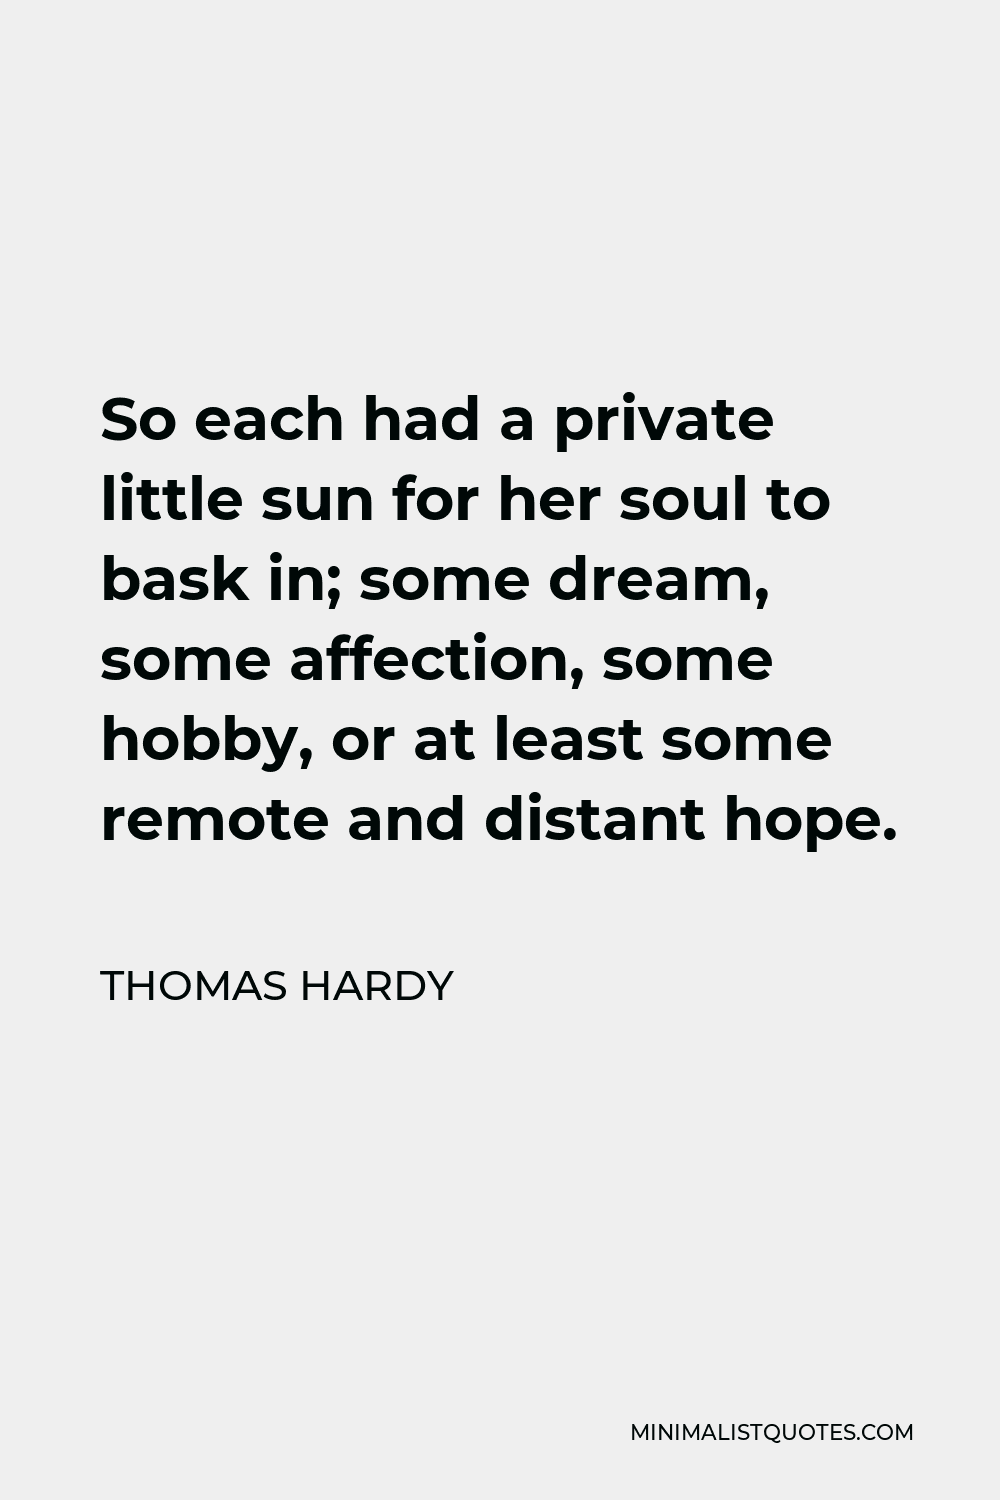 Thomas Hardy Quote - So each had a private little sun for her soul to bask in; some dream, some affection, some hobby, or at least some remote and distant hope.